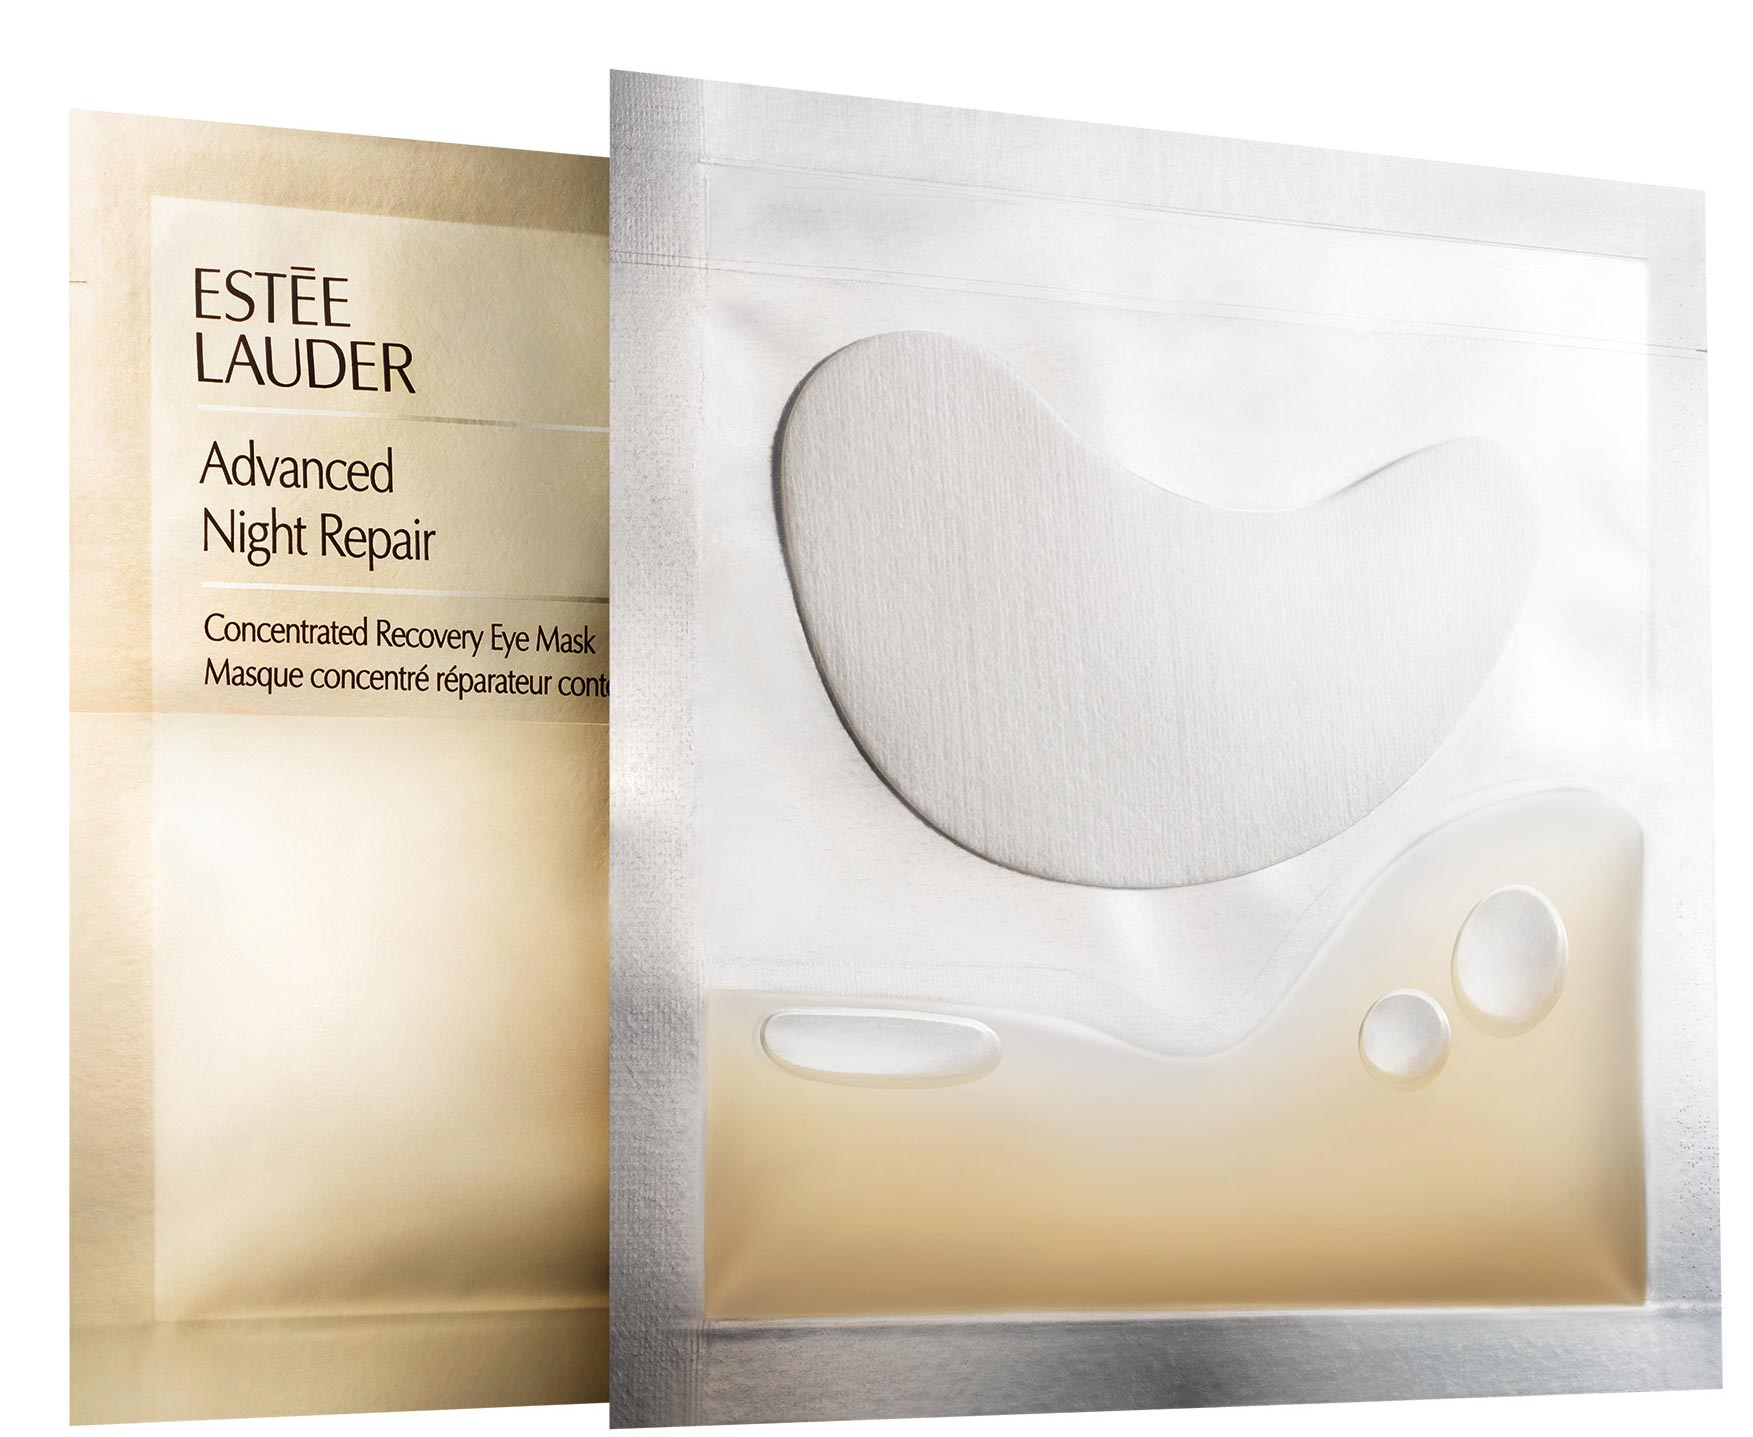 Estee Lauder Advanced Night Repair Results